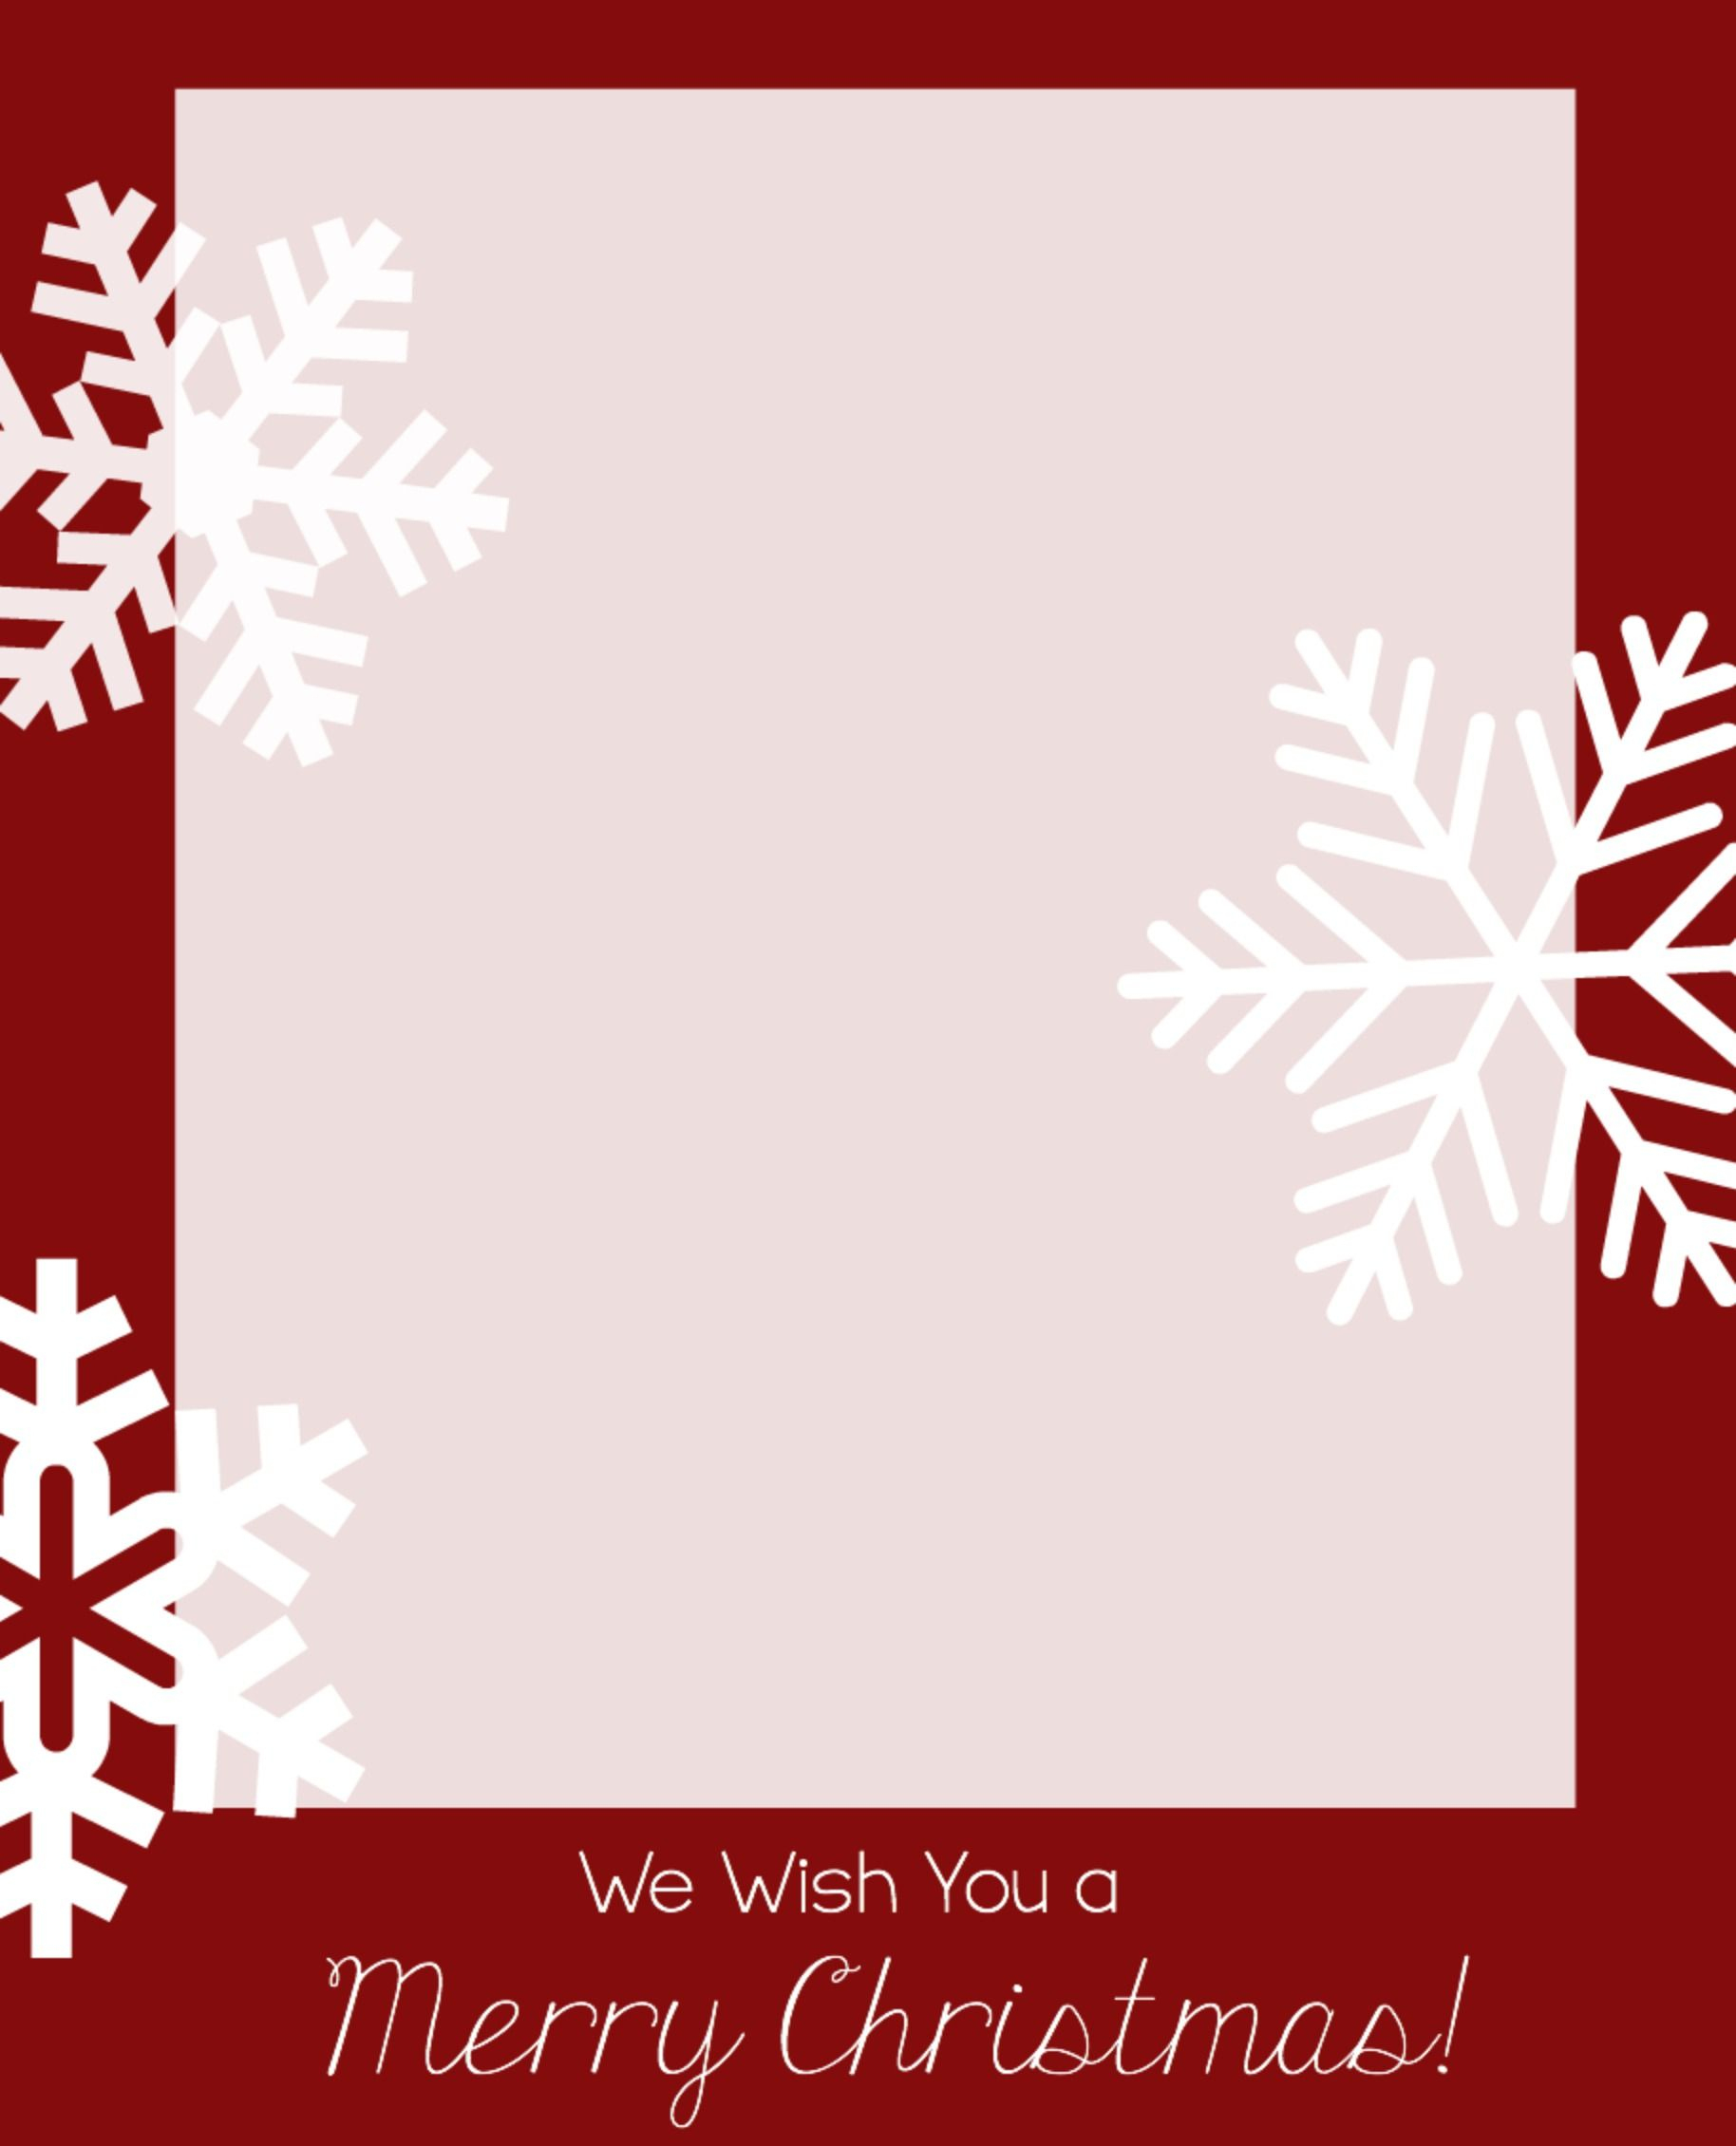 020 Free Photo Card Templates Template Ideas Christmas ~ Ulyssesroom - Free Printable Christmas Cards With Photo Insert